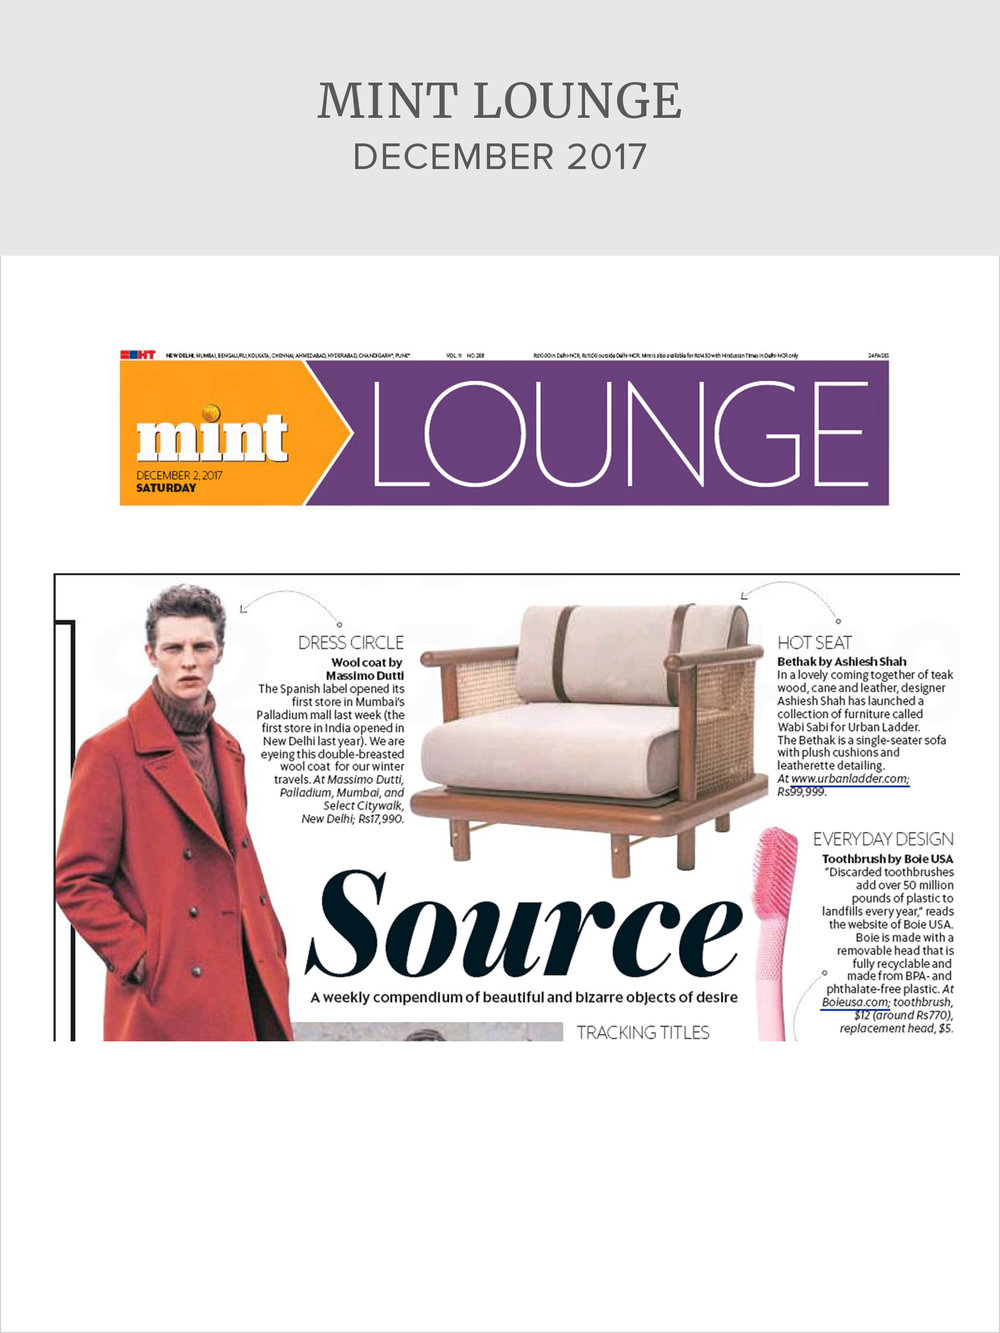 mint lounge article.jpg